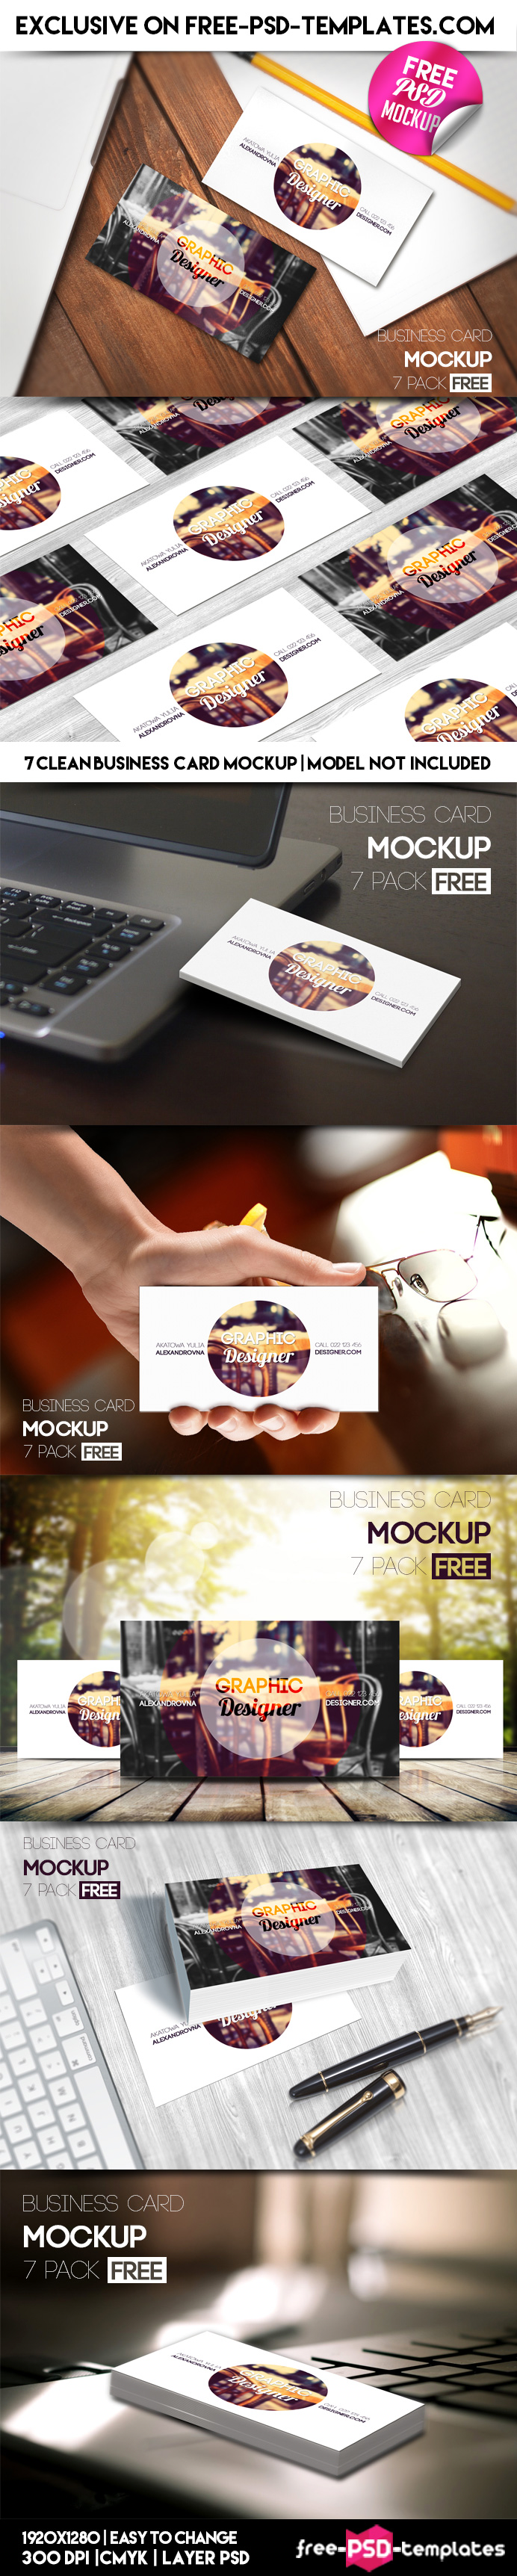 Preview_Business_Card_FREE_MOCKUP